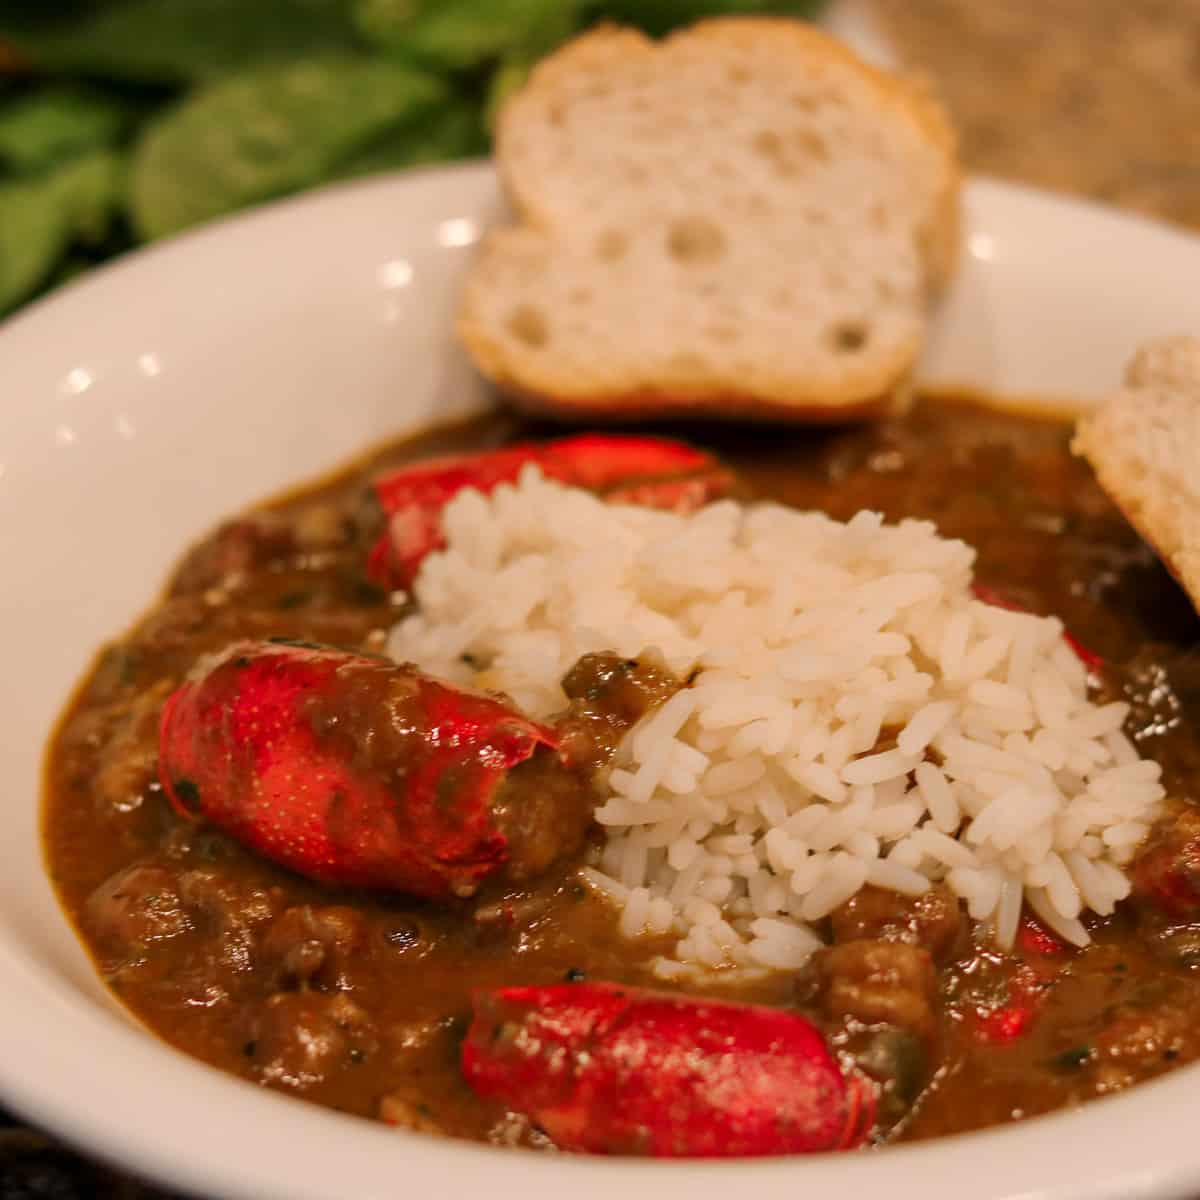 crawfish bisque with stuffed heads and rice in a white bowl with french bread and salad